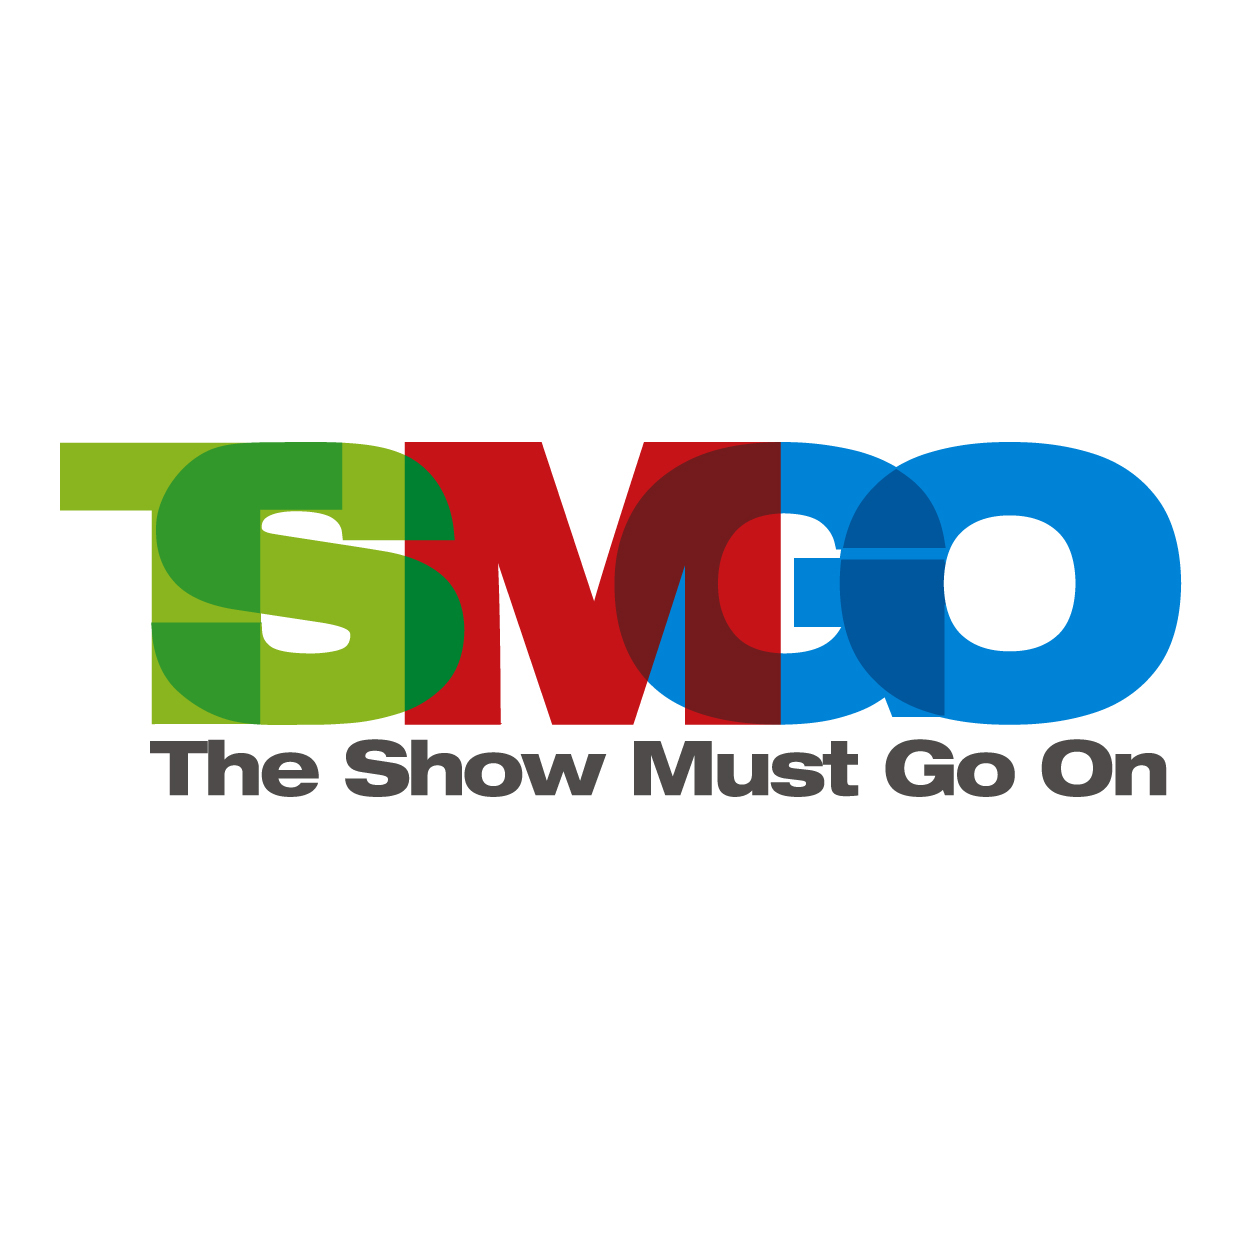 TSMGO (The show must go on)